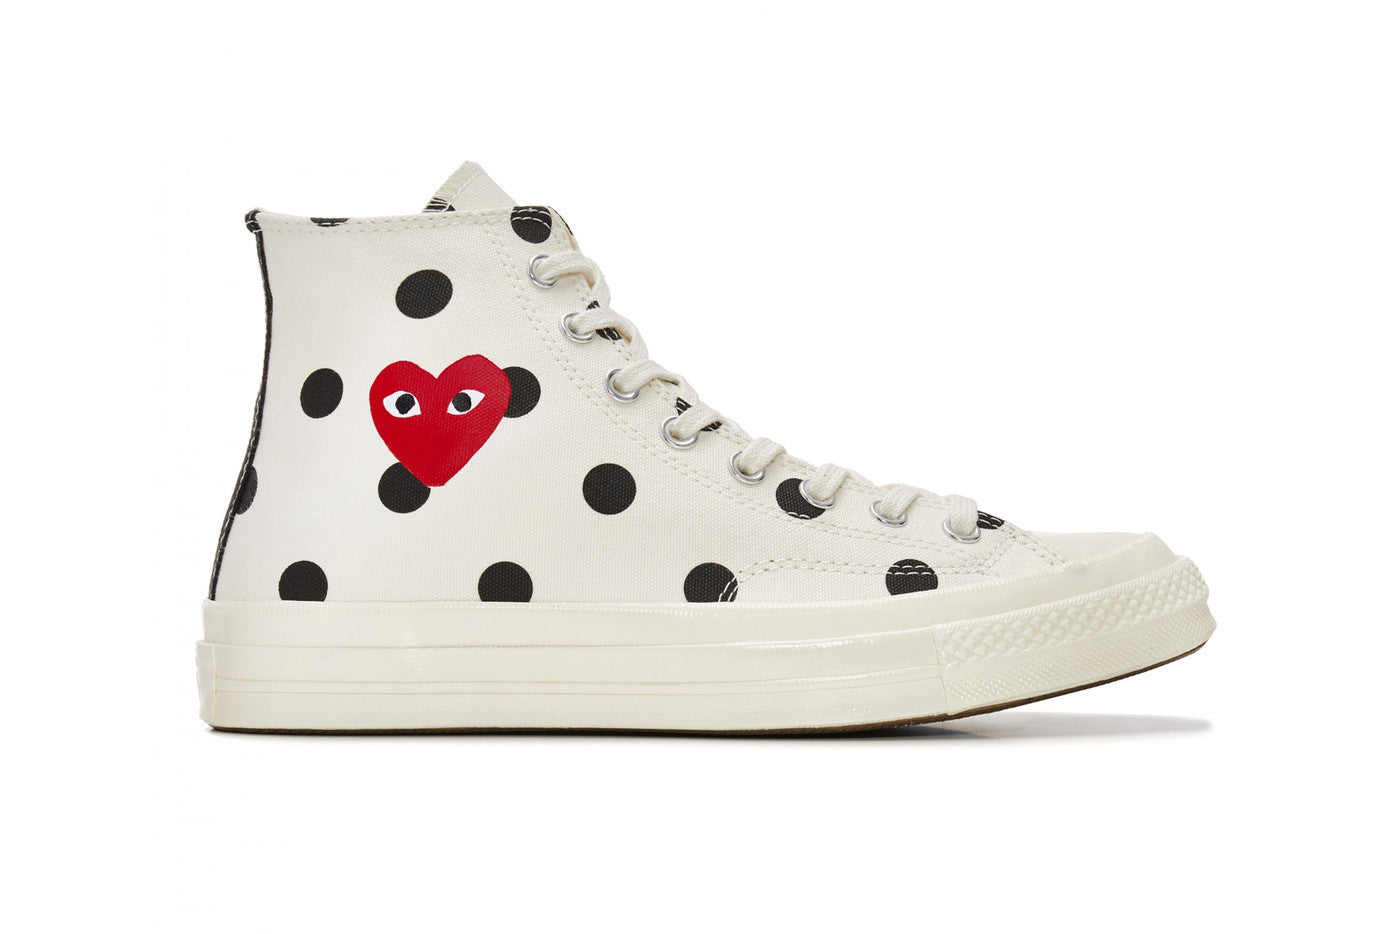 Play Comme des Garçons x Converse Polka Dot Red Heart Chuck Taylor All Star '70 High - White #157251C-Preorder Item-Navy Selected Shop